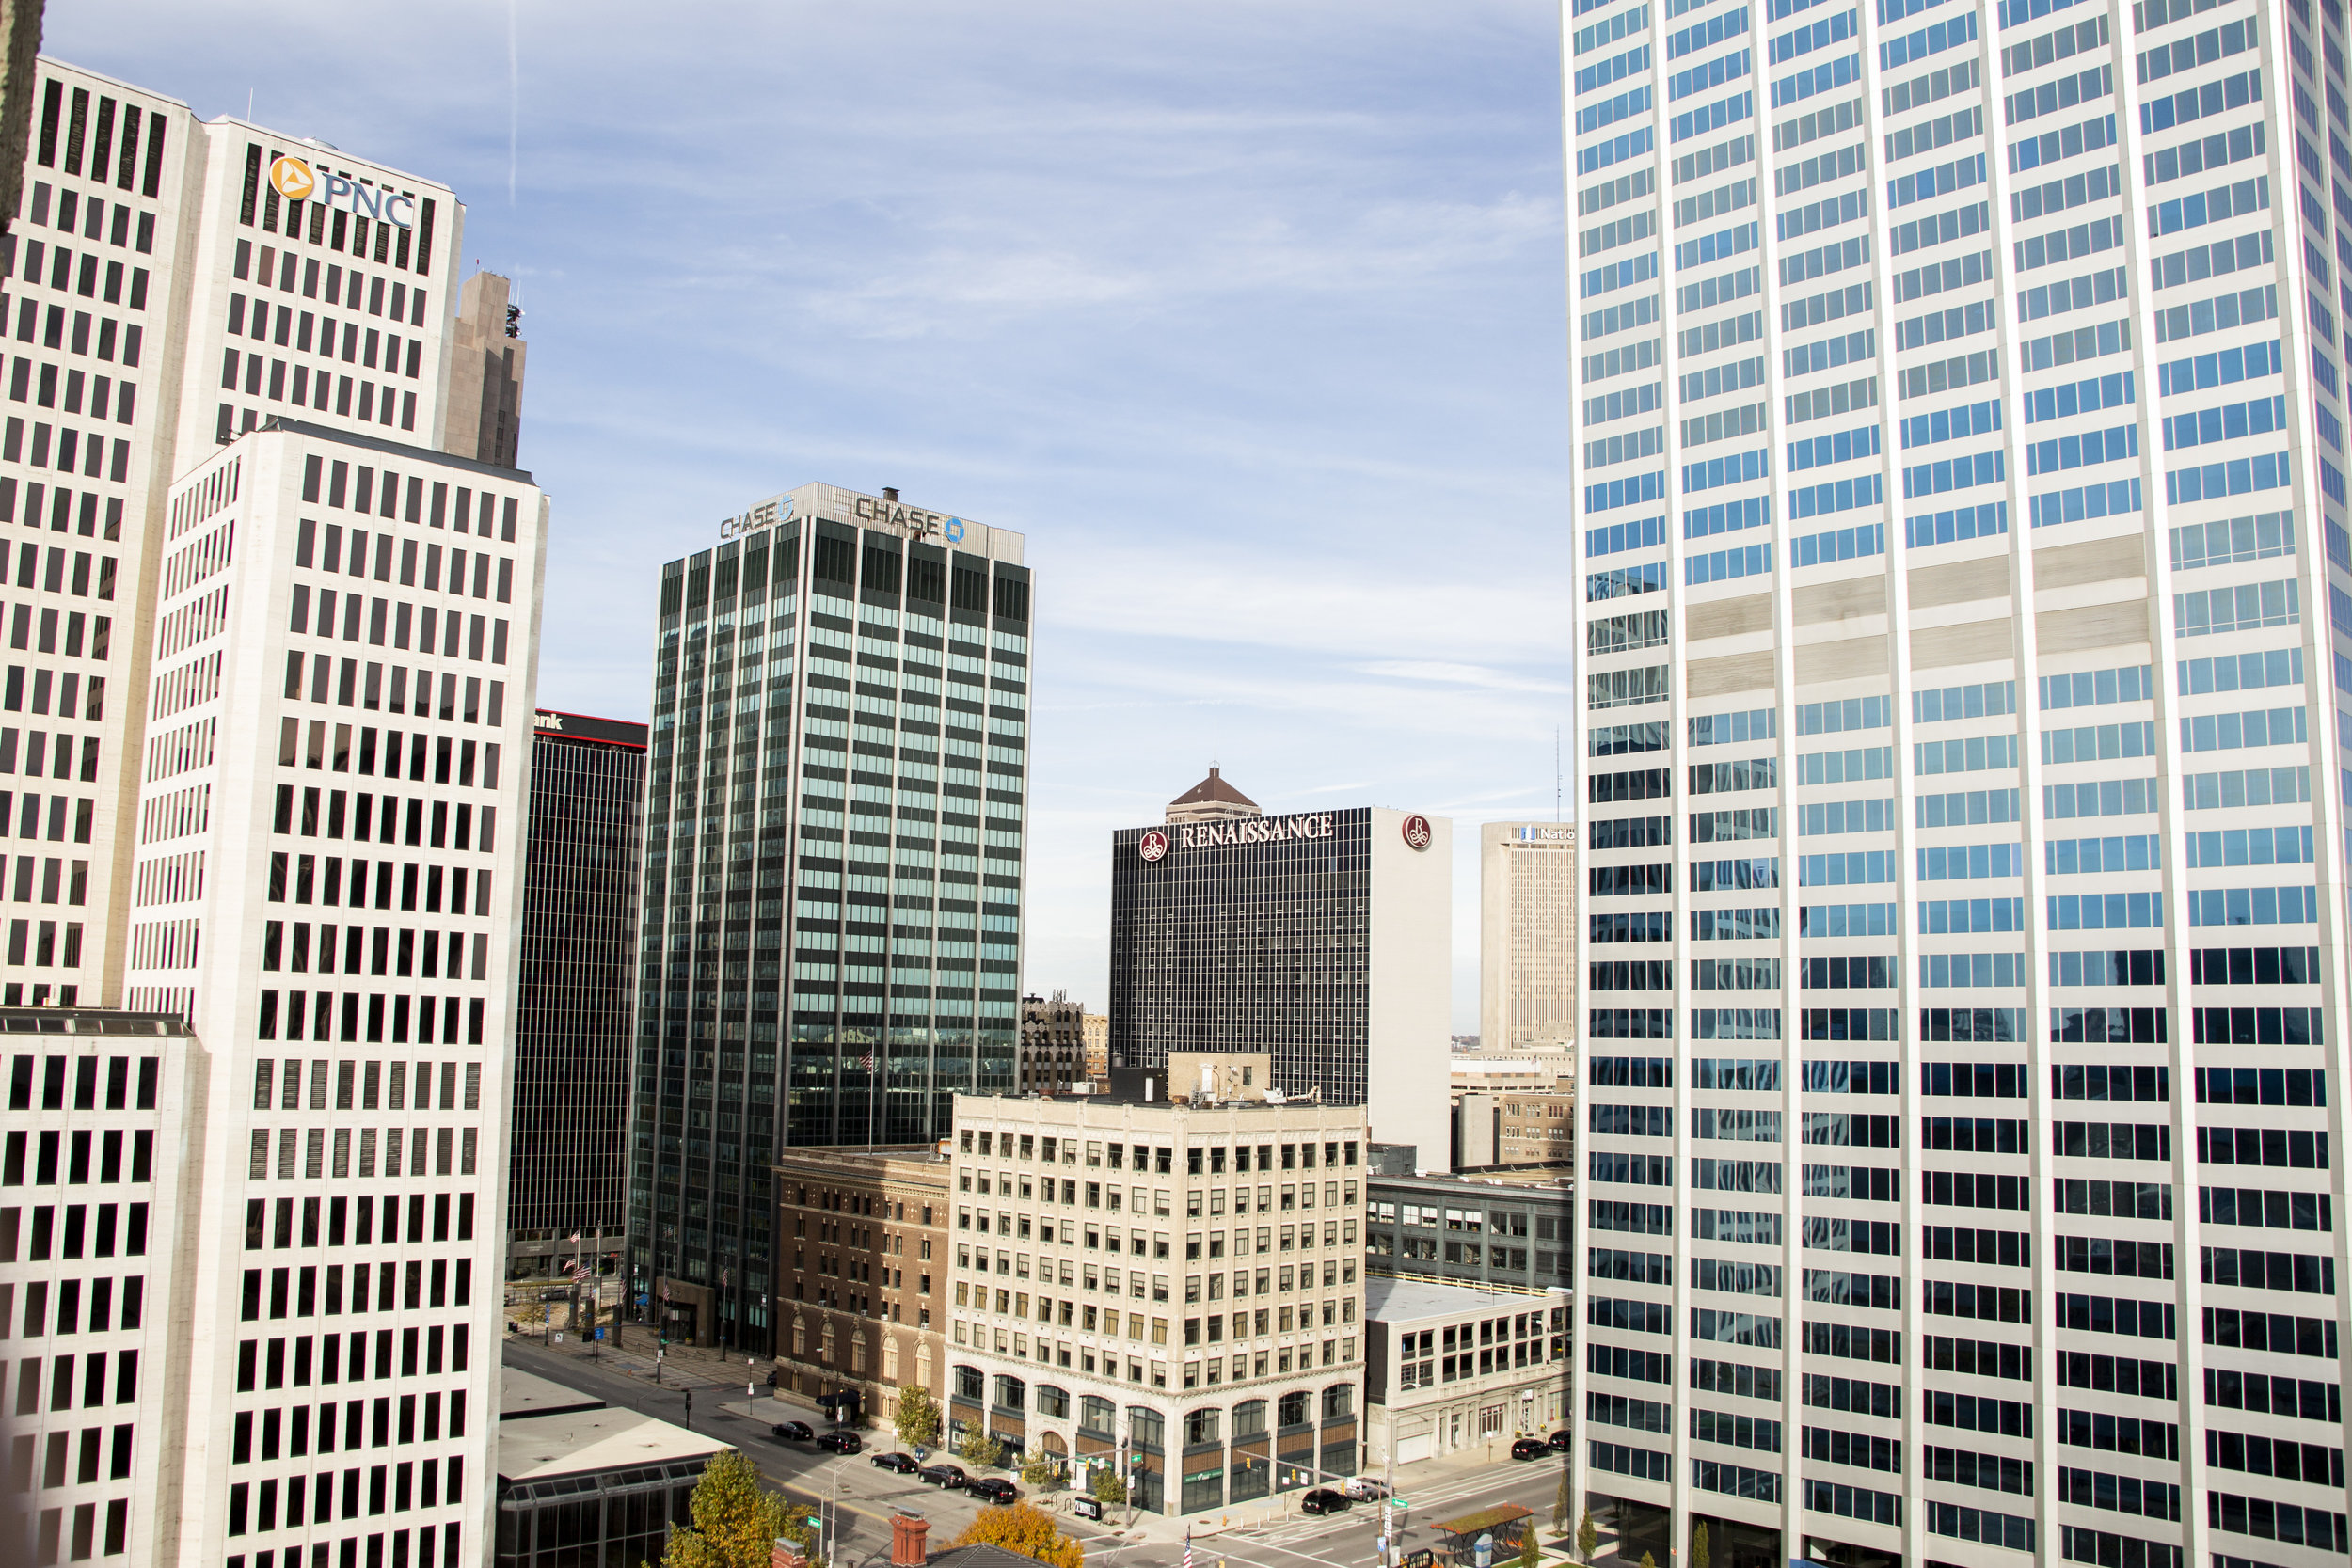 Our City - Columbus was voted as one of the top cities for technology startups. We are built on midwest values and take pride in balancing work from fun and our families. We're a city with a low cost of living, and a high value, meaning you can get more here. We're a city with a thriving pool of talent and high-growth companies.